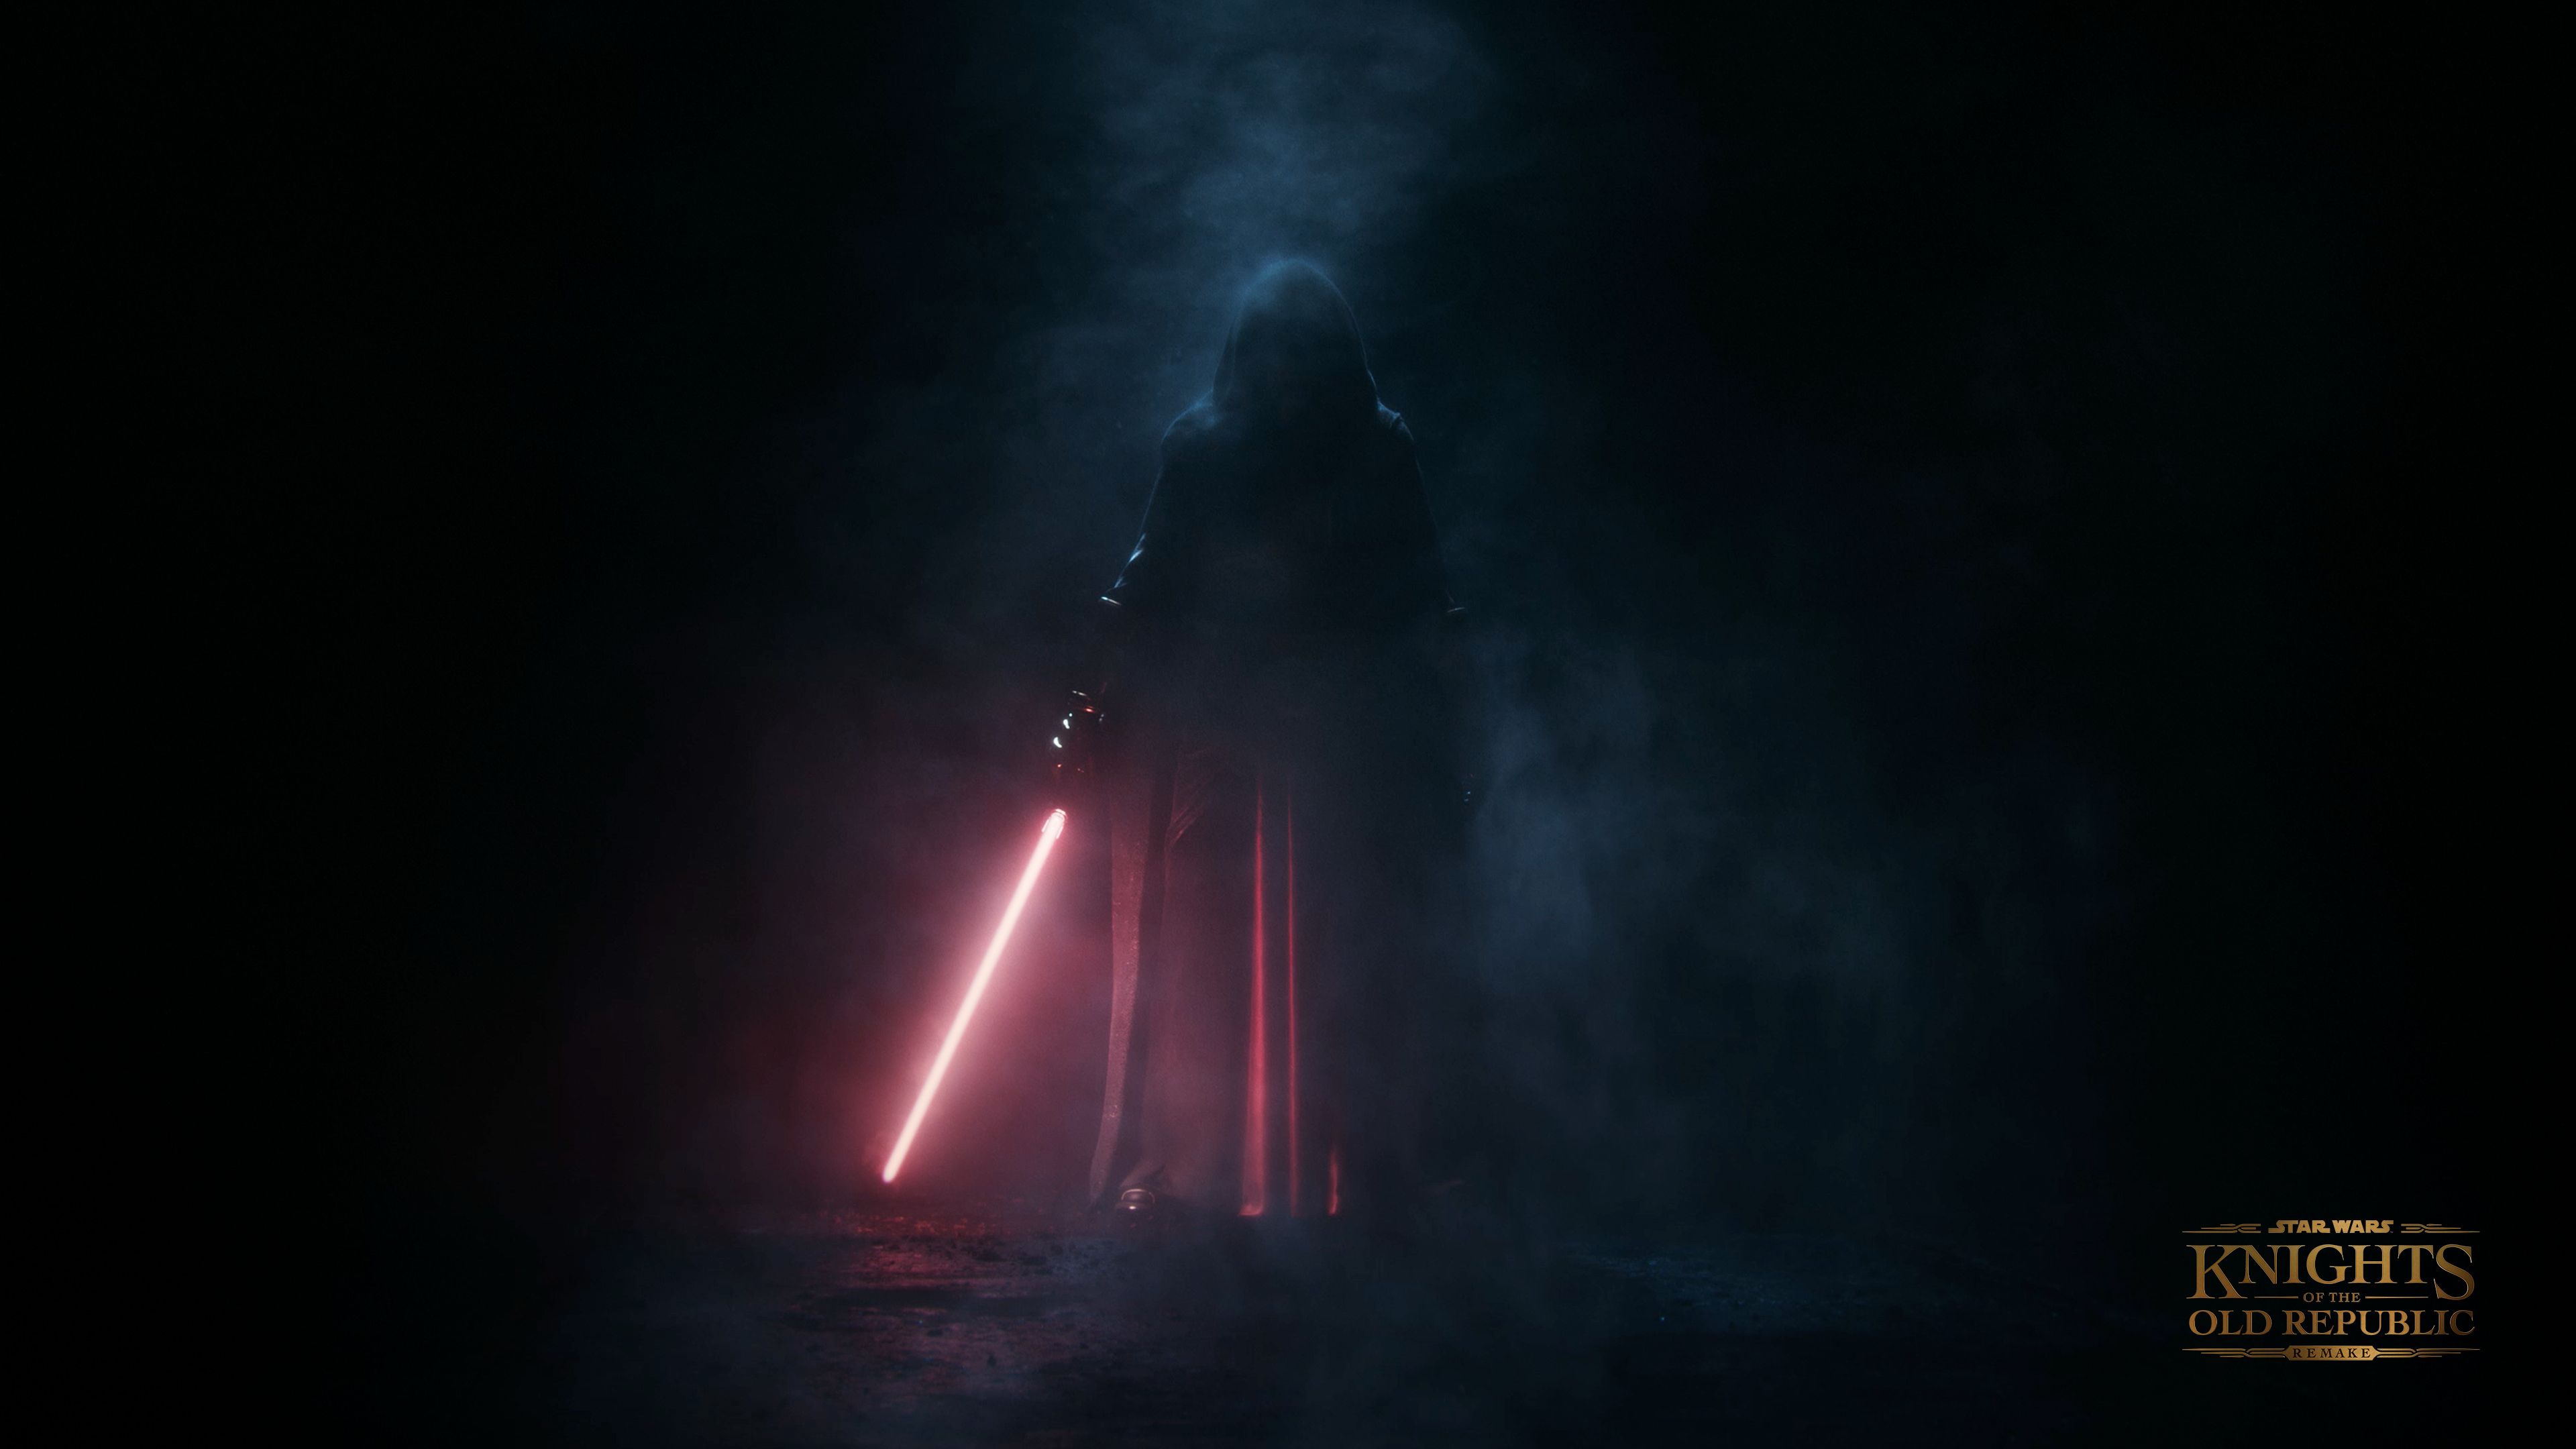 Darth Revan in shadow, artwork from the Star Wars: Knights of the Old Republic remake